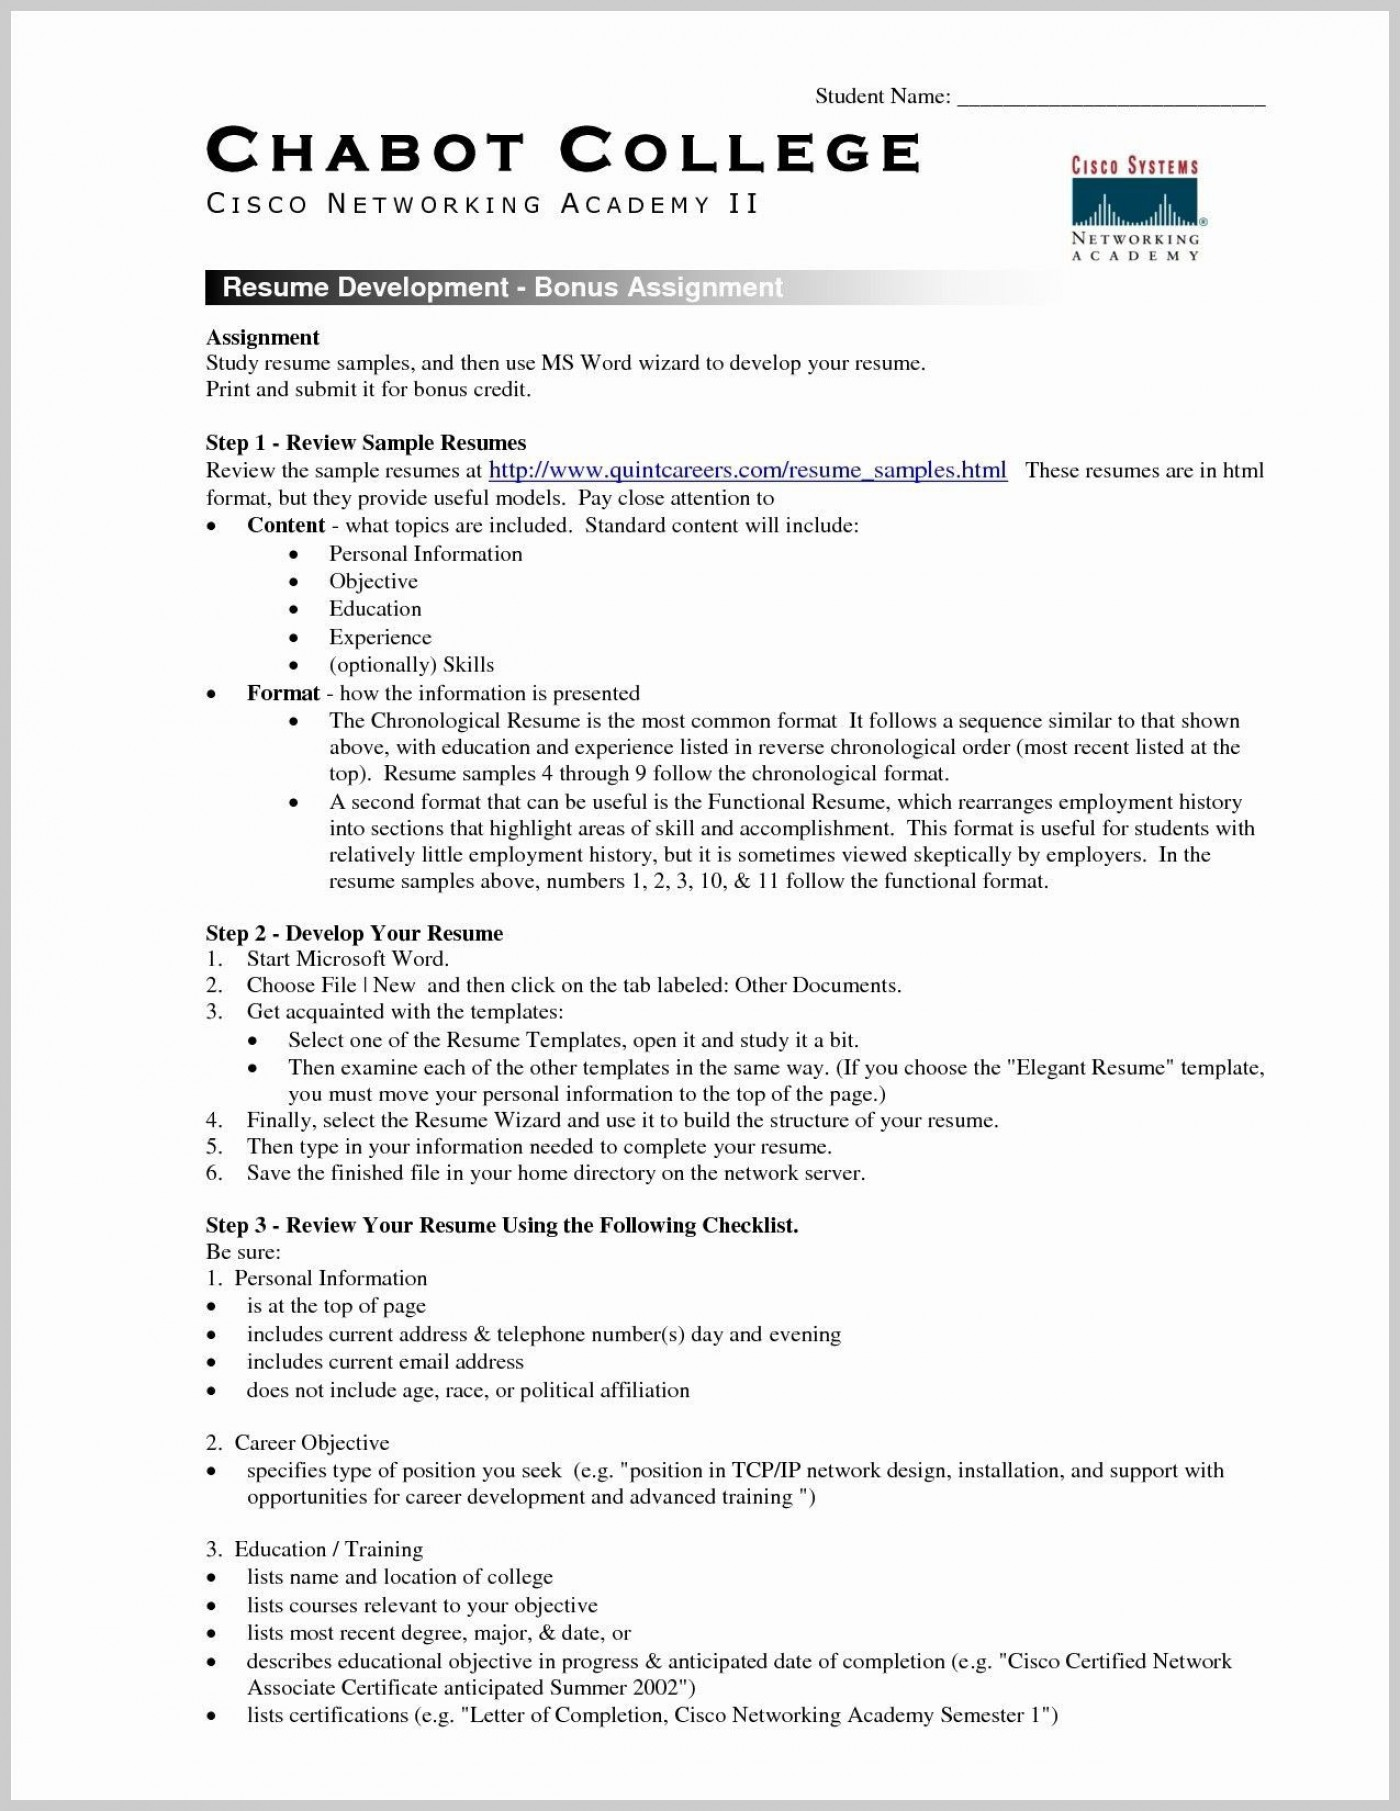 003 Simple Student Resume Template Microsoft Word Photo  Free College Download1400